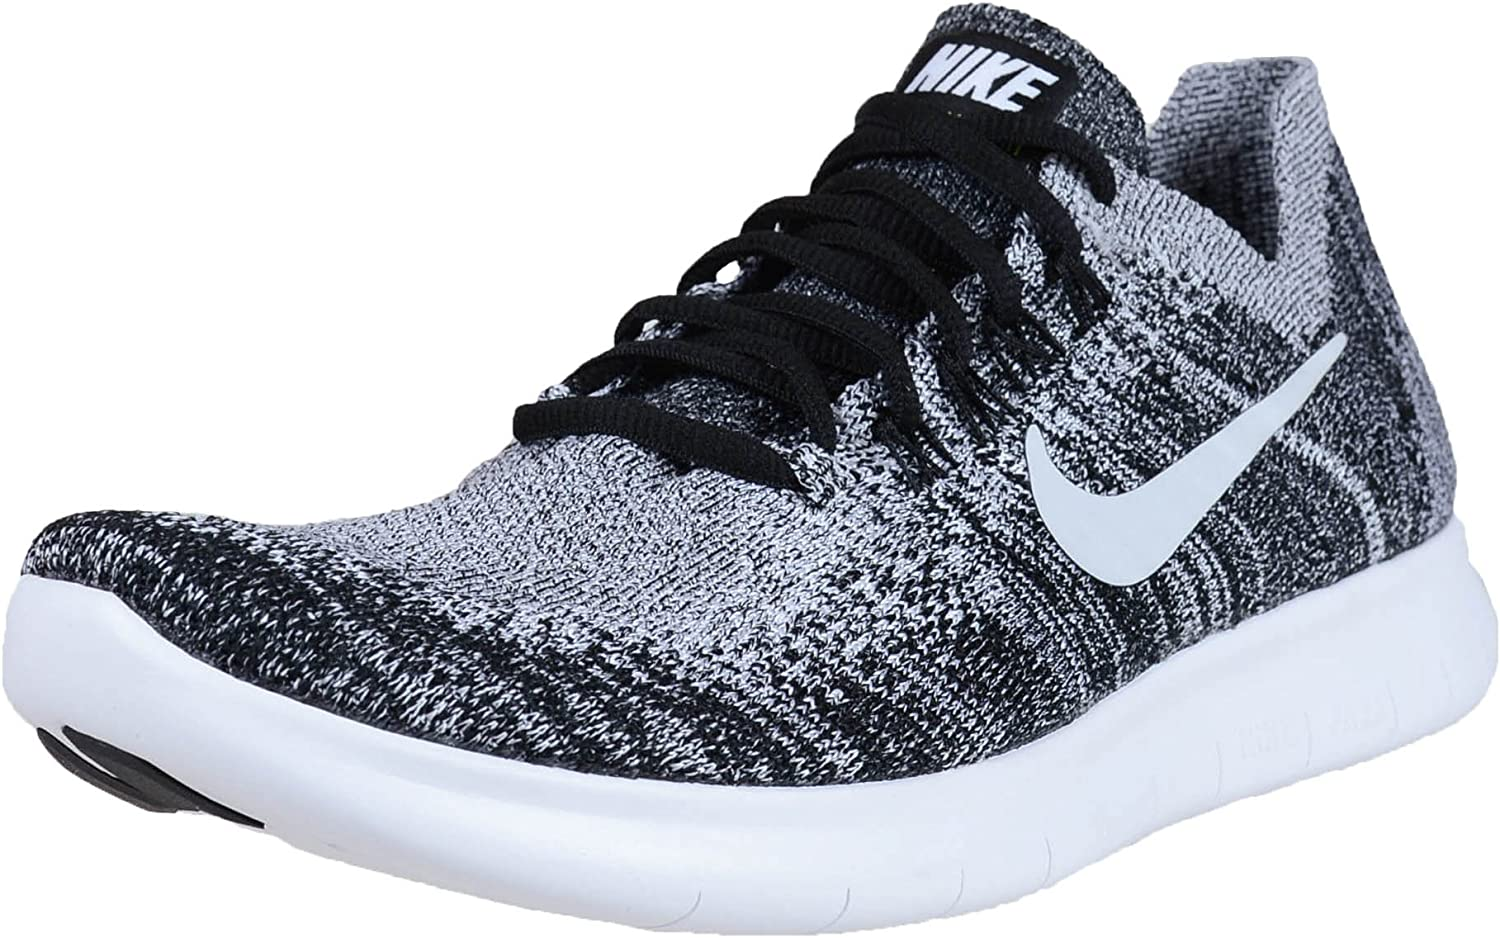 capo Compatibile con Maestoso  Amazon.com | NIKE Women's WMNS Free RN Flyknit 2017, Black/White-Volt, 10.5  M US | Road Running